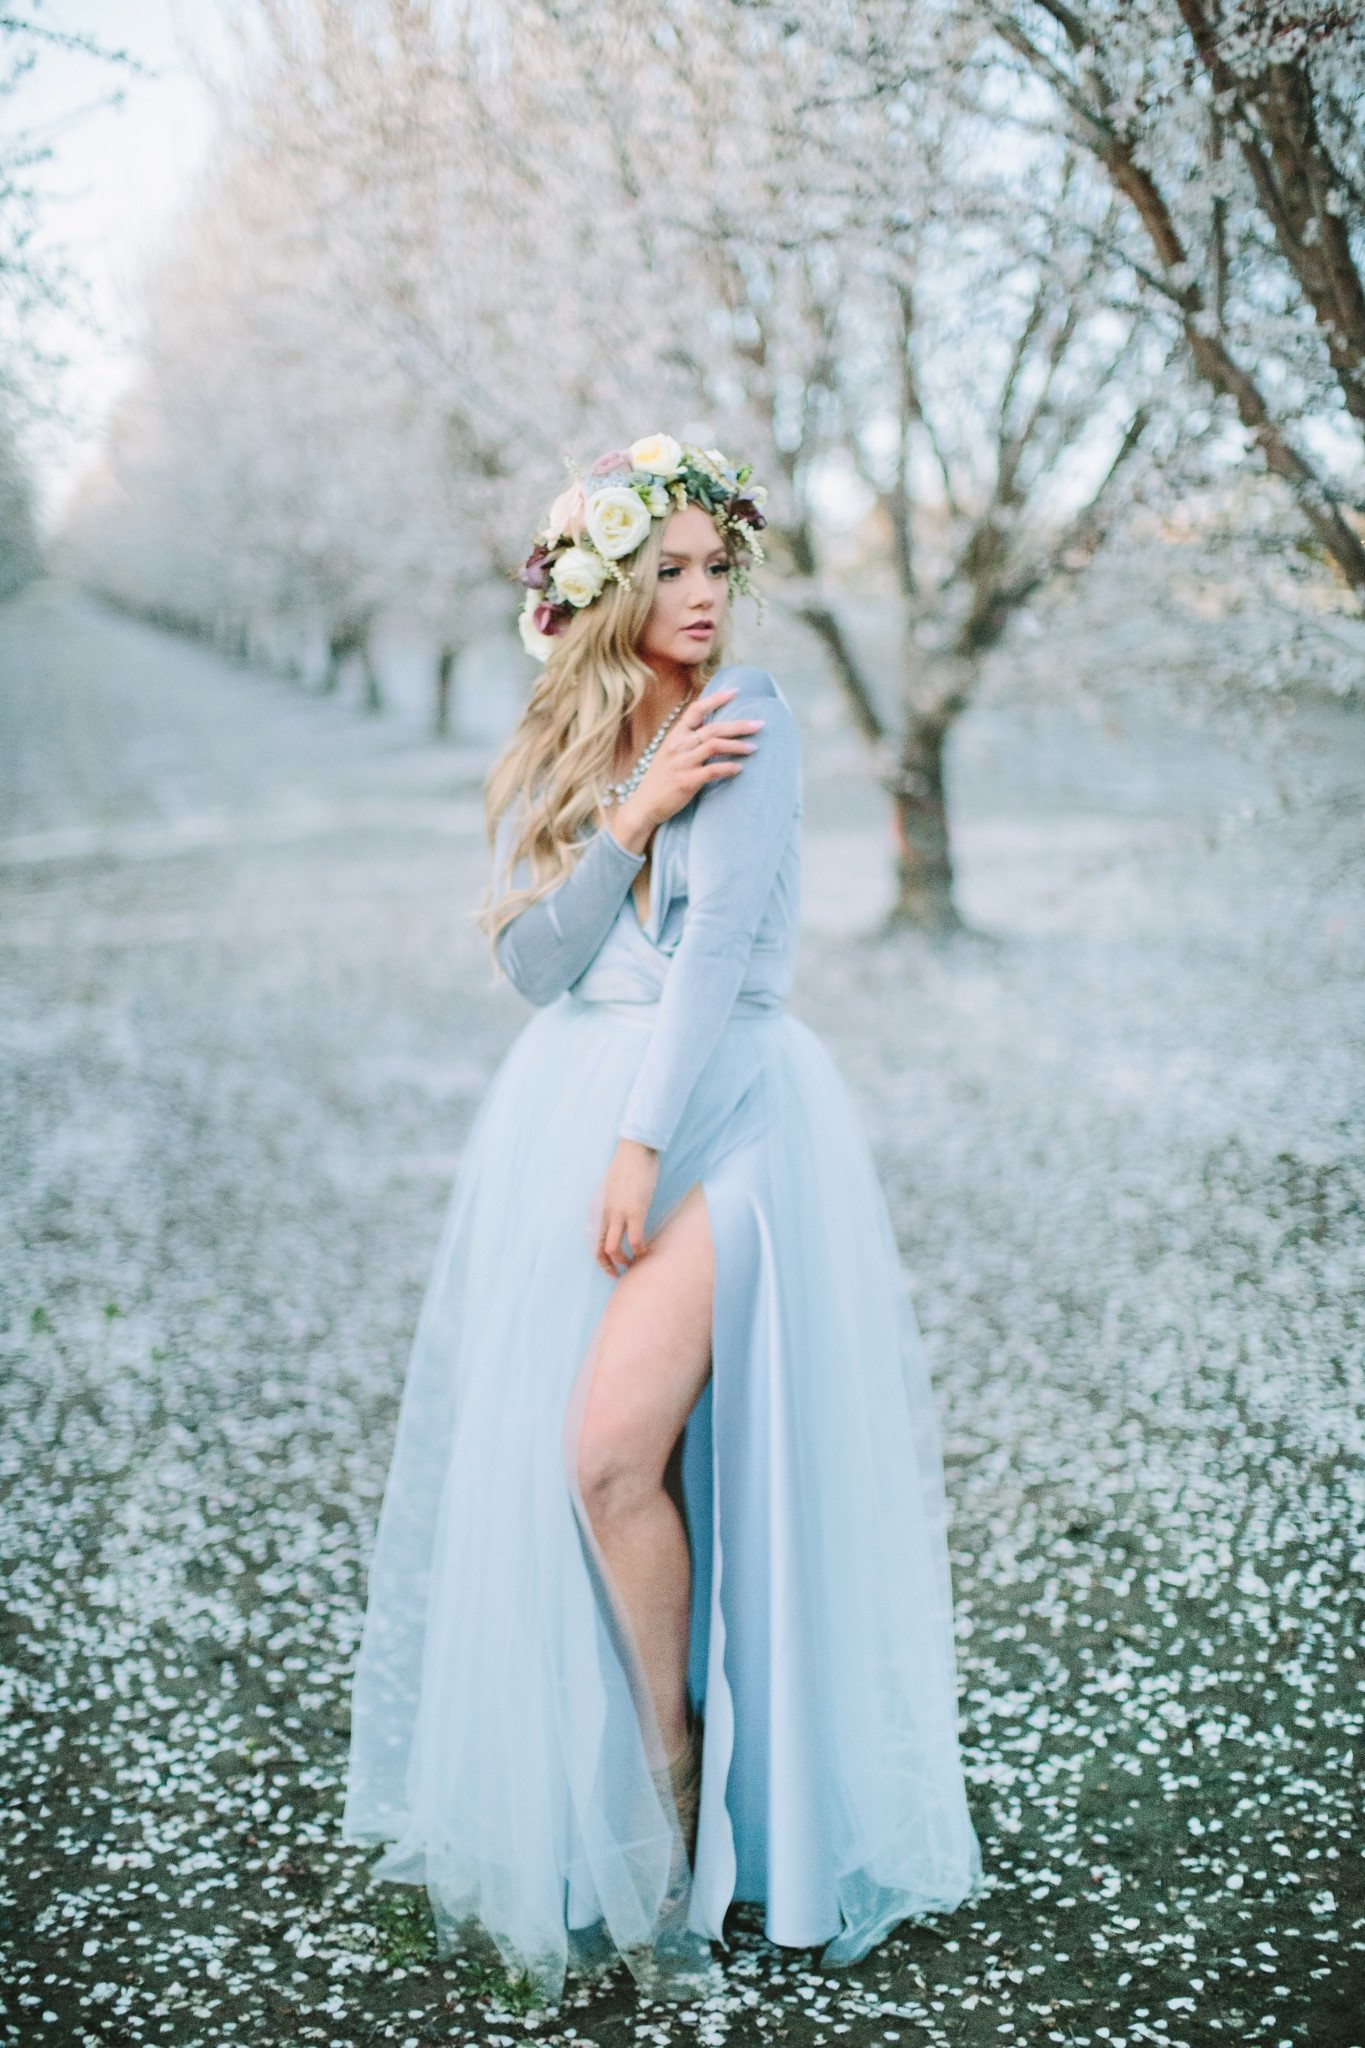 Icy Blue Easter with Bliss Tulle  The City Blonde